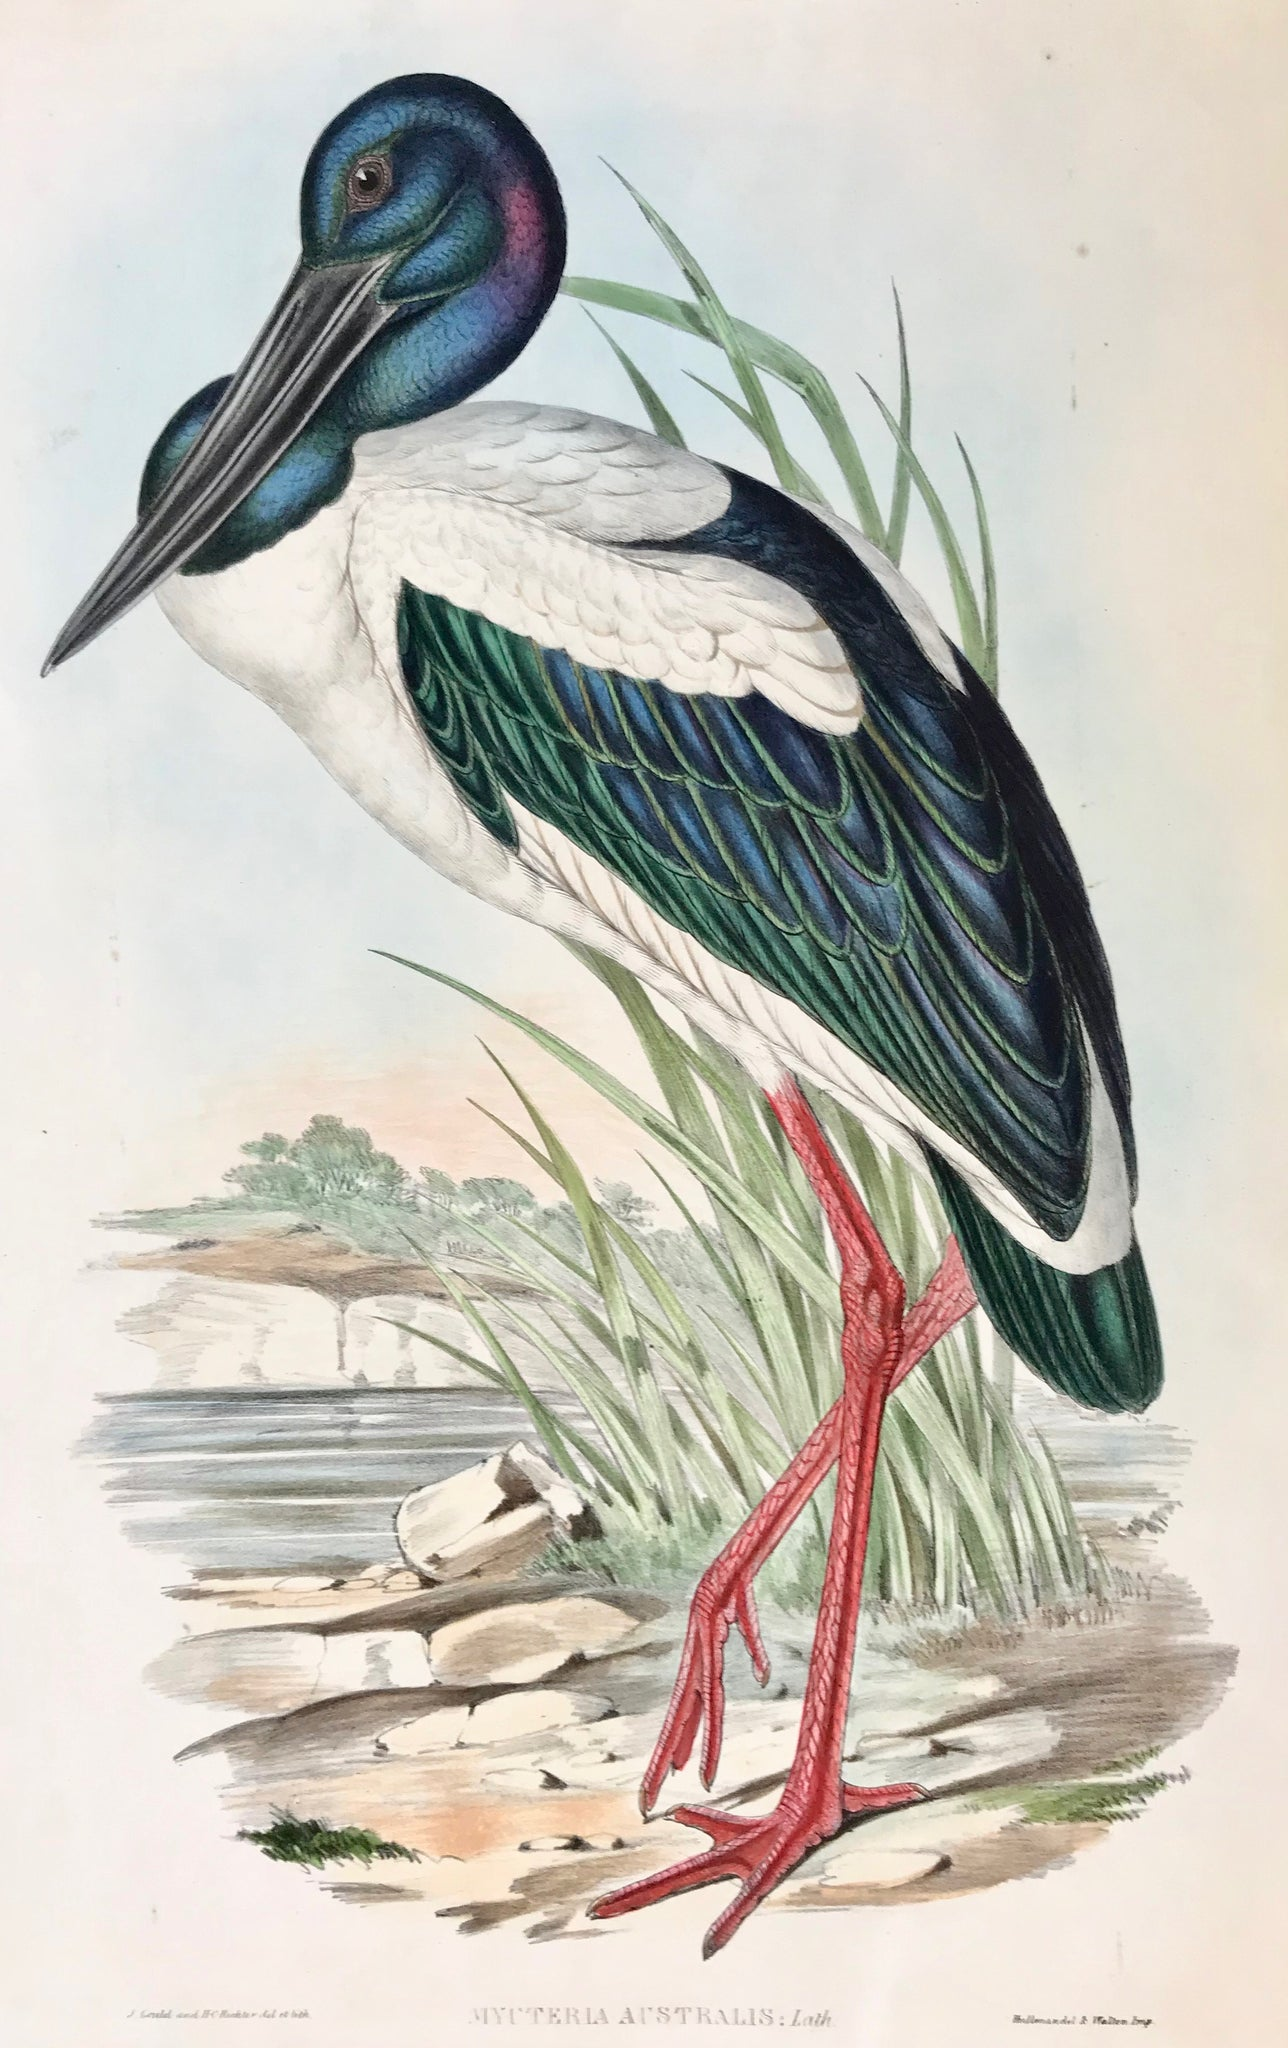 """Mycteria Australis: Lath"" Original hand-colored lithograph by John Gould and H.C: Richter, 1837-1838. From ""The Birds of Australia and Adjacent Islands"". In the lower left corner is a carefully repaired tear using paper paste."